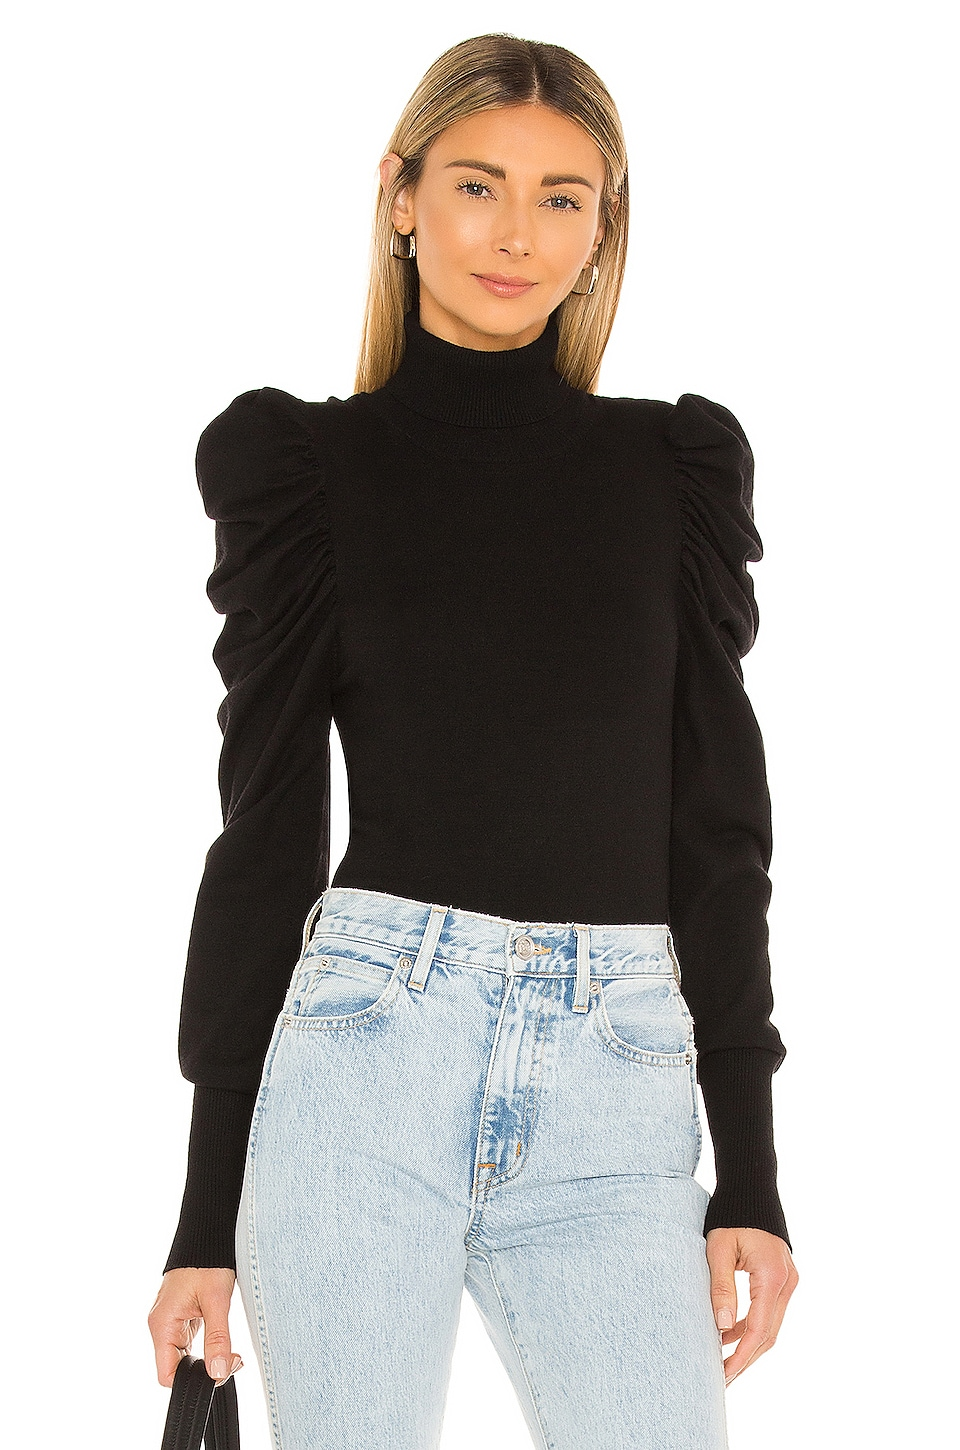 L'Academie Larra Sweater in Black